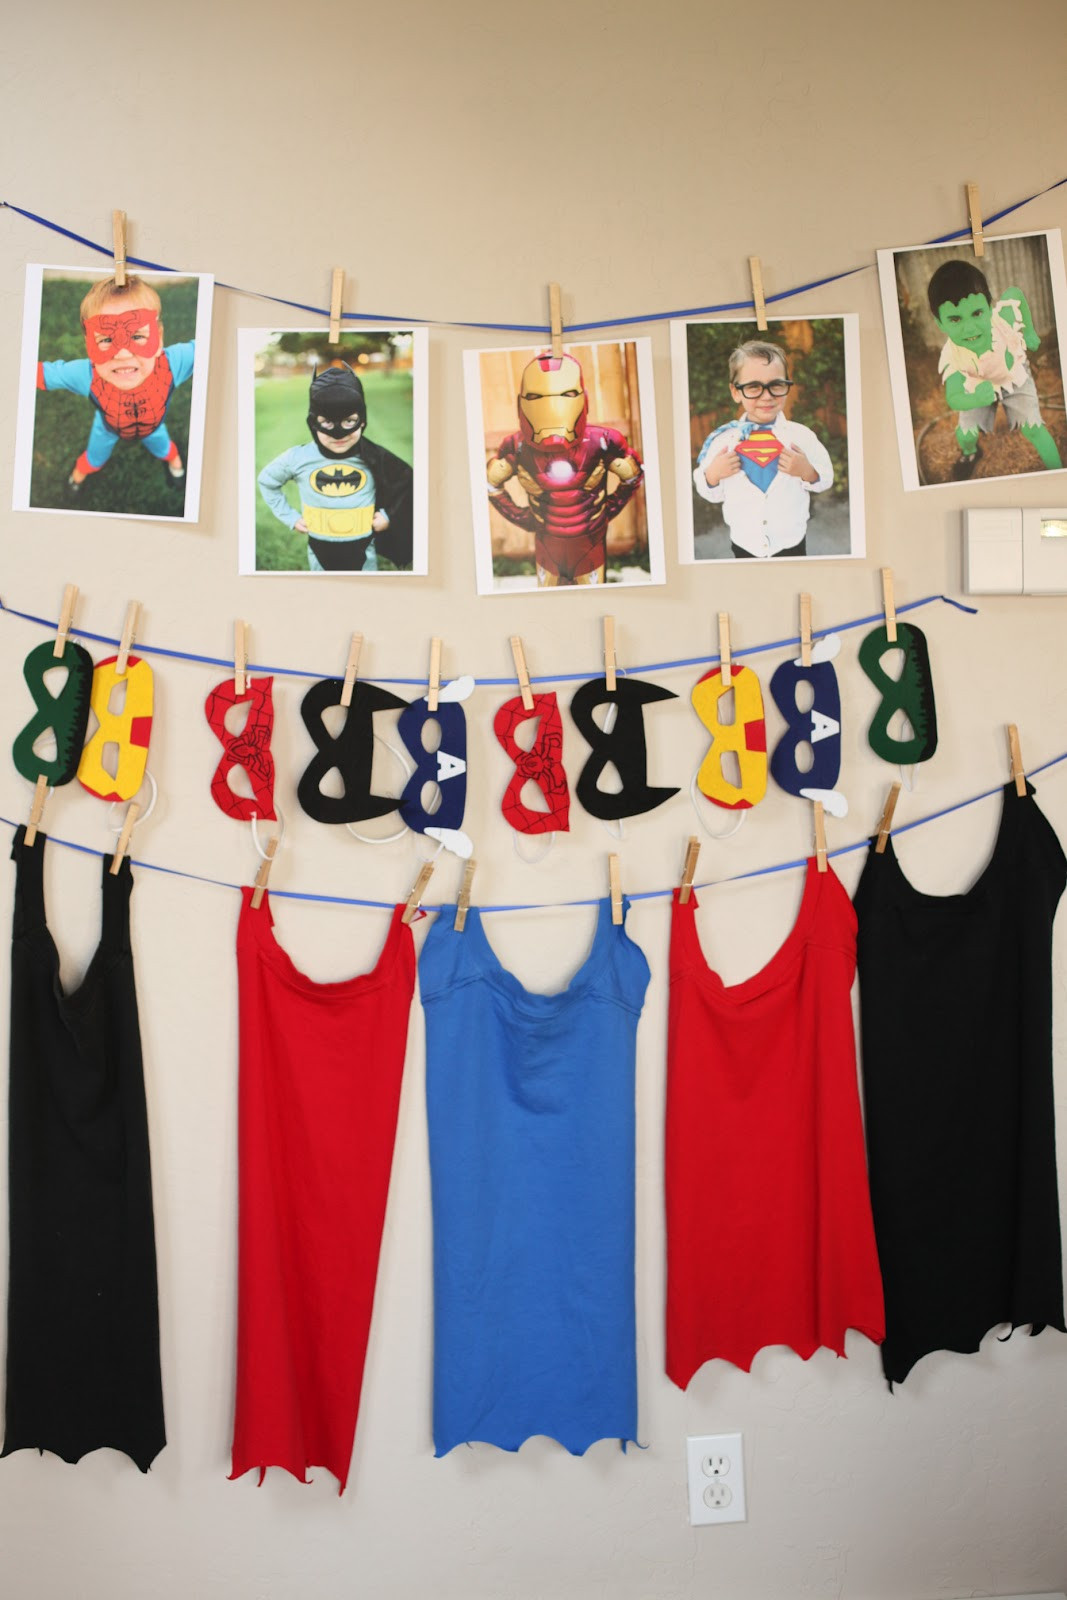 Best ideas about Superhero Birthday Decorations . Save or Pin Superhero Birthday Party Decorations and Games Now.